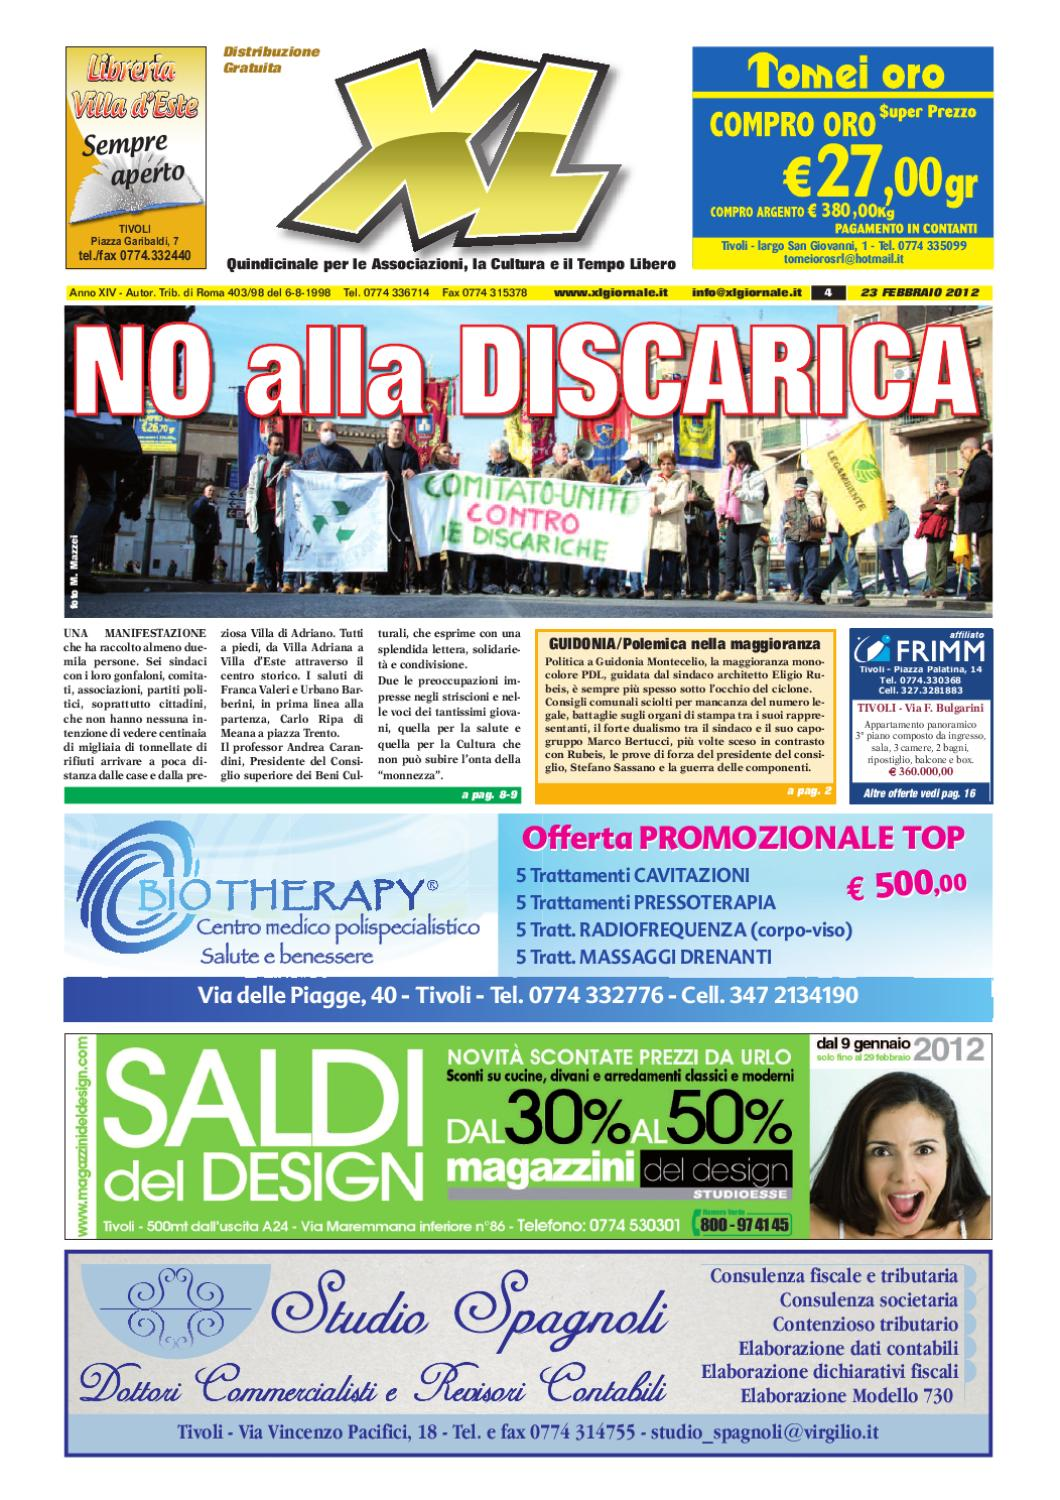 Xl Giornale 04 2012 By Xl Giornale Issuu